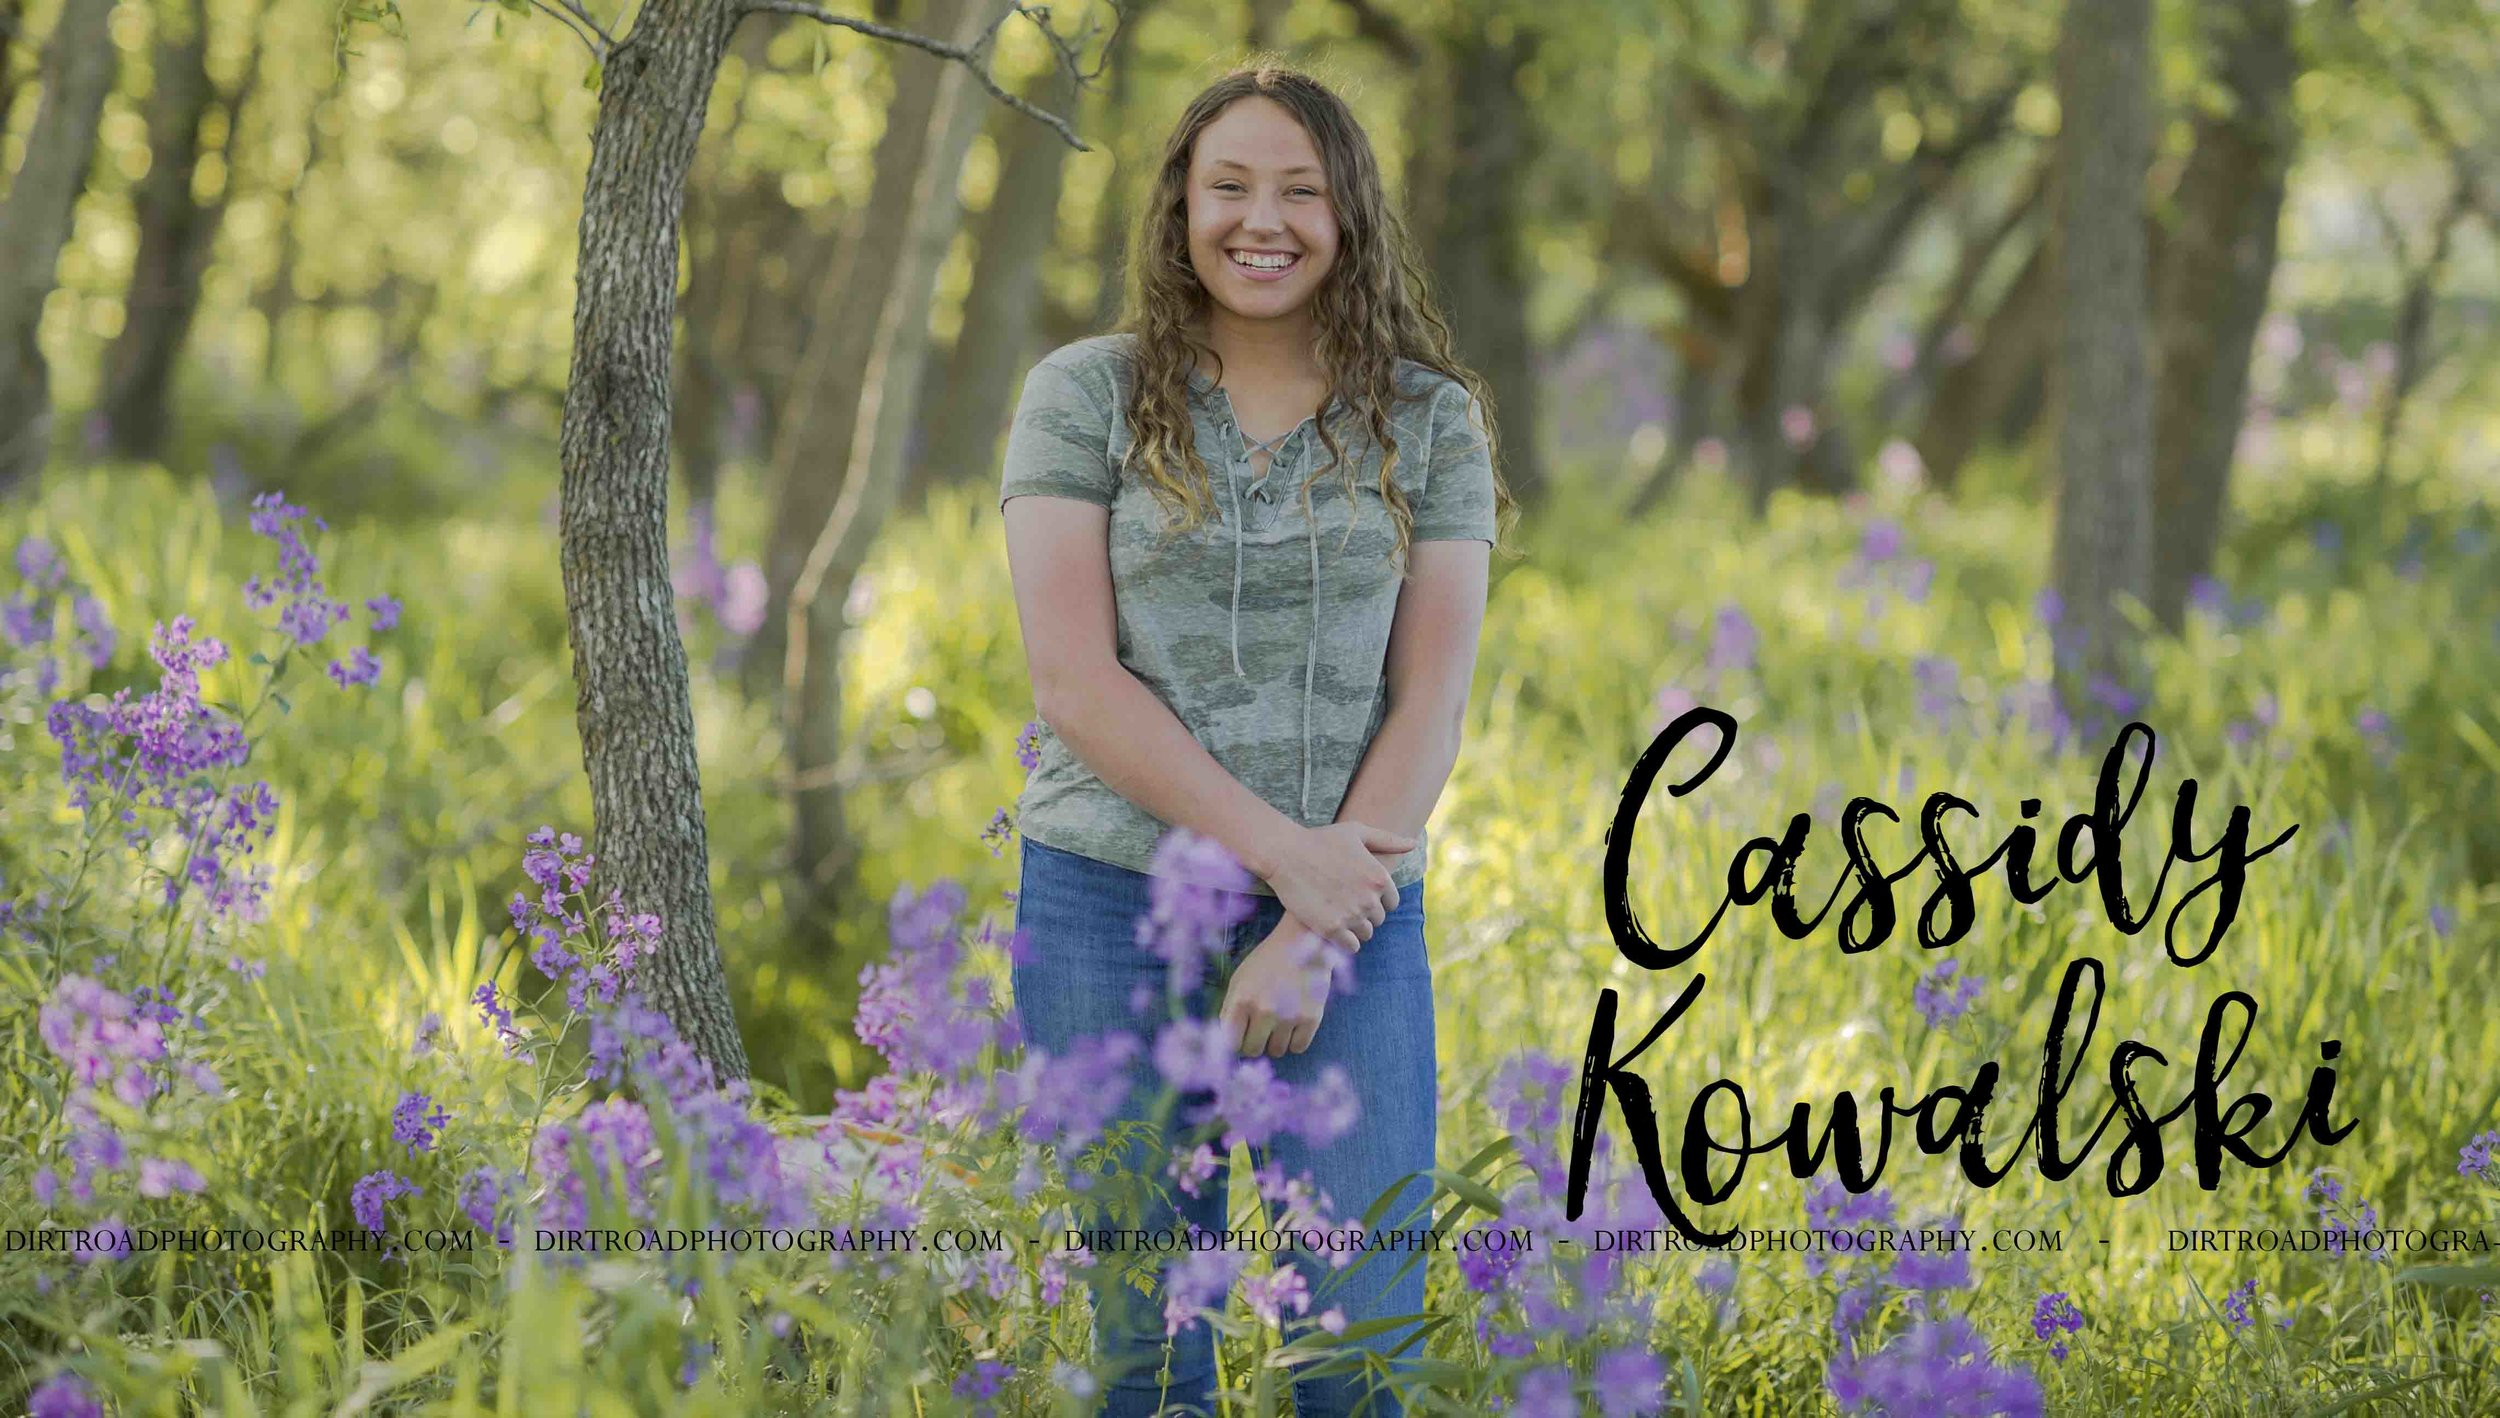 images of high school girl senior photos named cassidy kowalski of wilber nebraska who went to tri-county high school in nebraska and is part of the class of 2020. photos were taken near swanton nebraska in saline county. photo includes purple spring flowers at sunset with girl in camo lace up t-shirt and jeans standing in tall natural grass with trees surrounding her. teen has curly long brown hair. photos taken at sunset near water and farm pond. photographer is kelsey homolka nerud of wilber nebraska who specializes in high school senior photography and senior pictures.